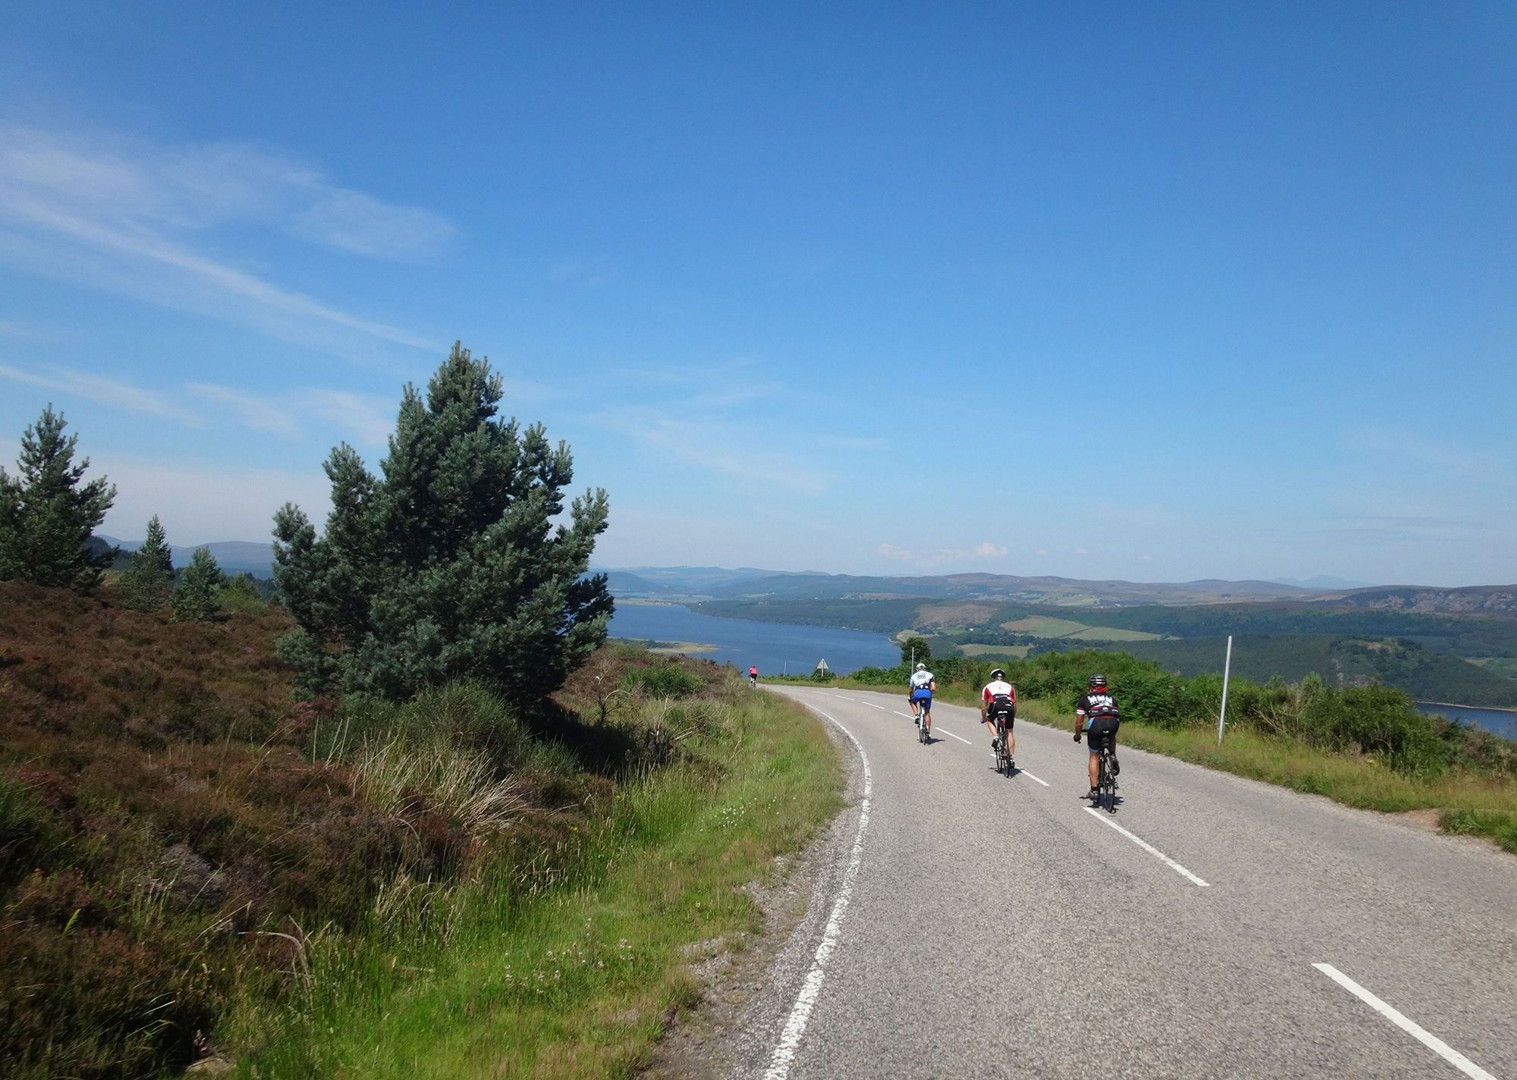 guided-cycling-holiday-uk.jpg - UK - Land's End to John O'Groats Explorer (22 days) - Guided Cycling Holiday - Leisure Cycling